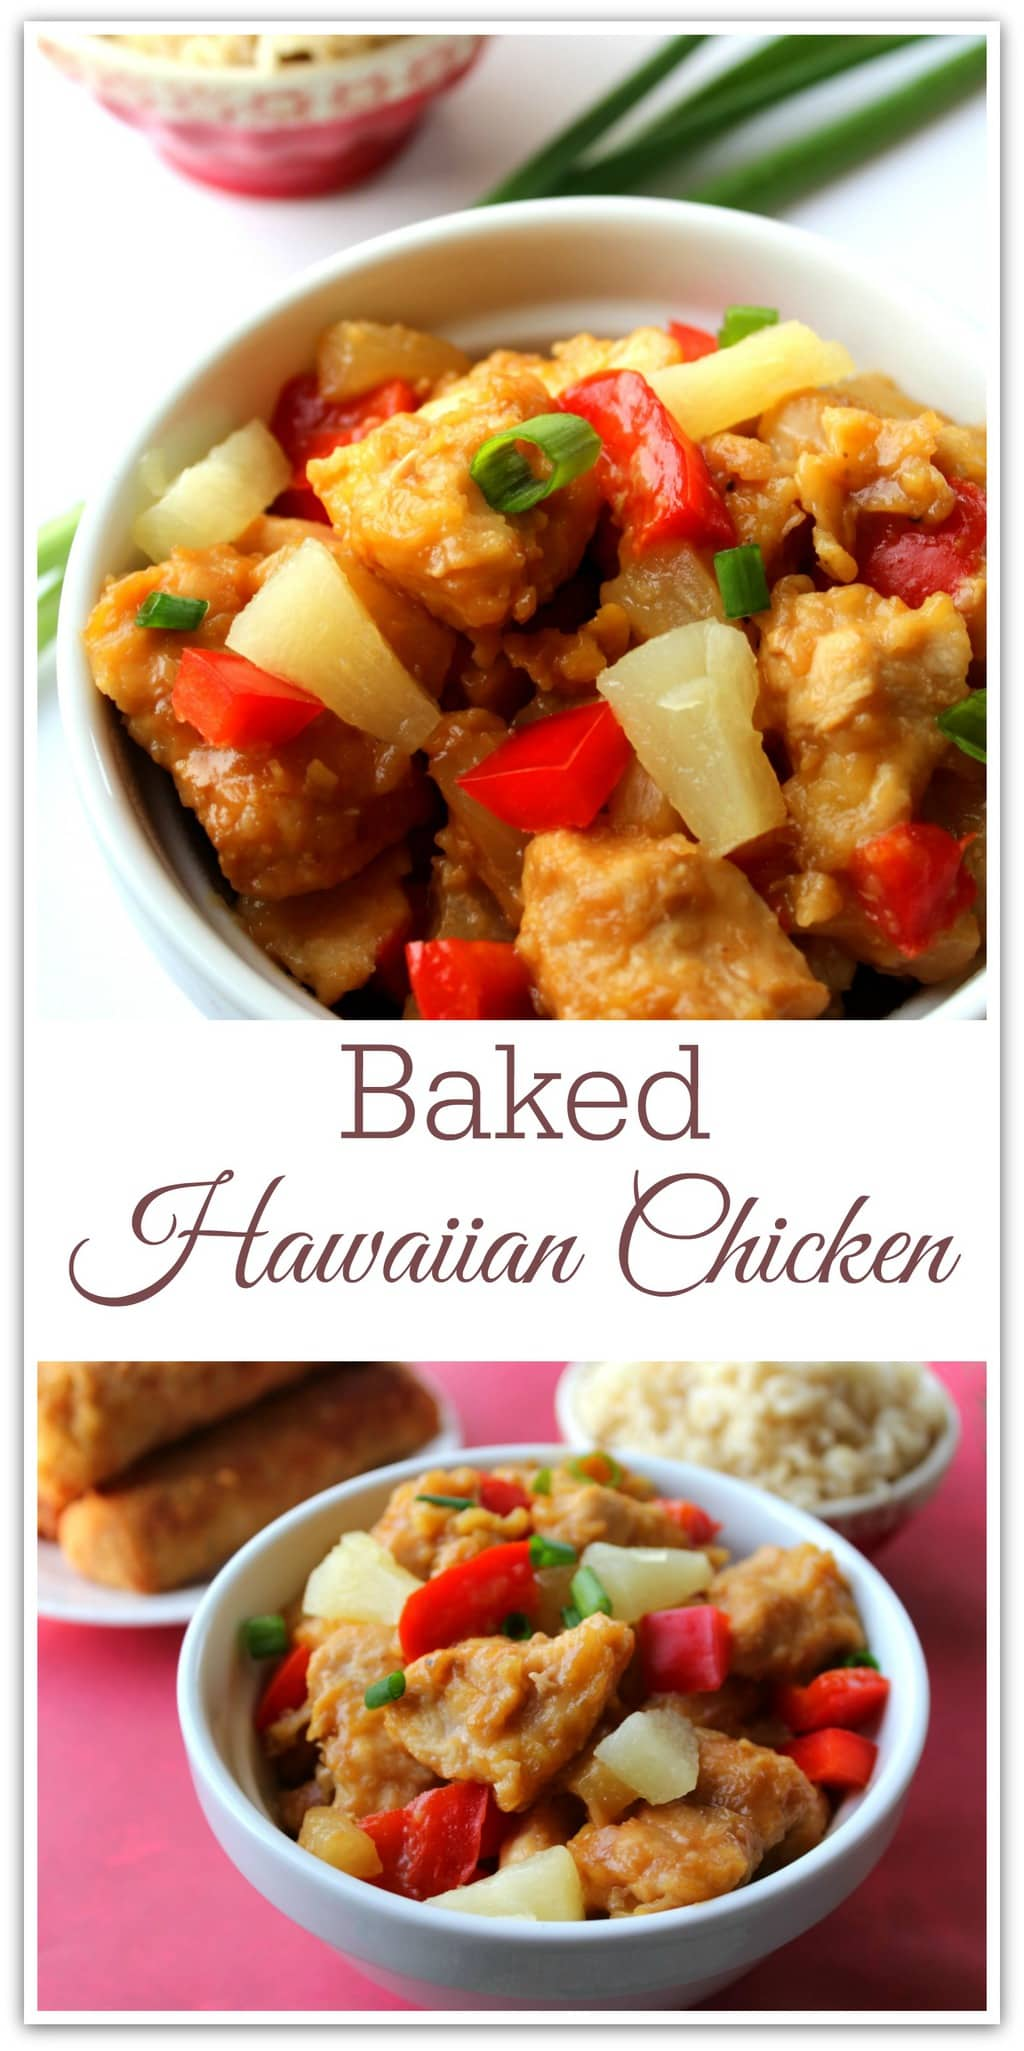 This Baked Sweet Hawaiian Chicken recipe is so easy, and your family will love it. Chicken recipes are my go-to dinner recipe because they are usually quick and not too difficult to pull off. The sweetness of the pineapple and mixed with the red pepper is so delicious. You will want to make this again and again!